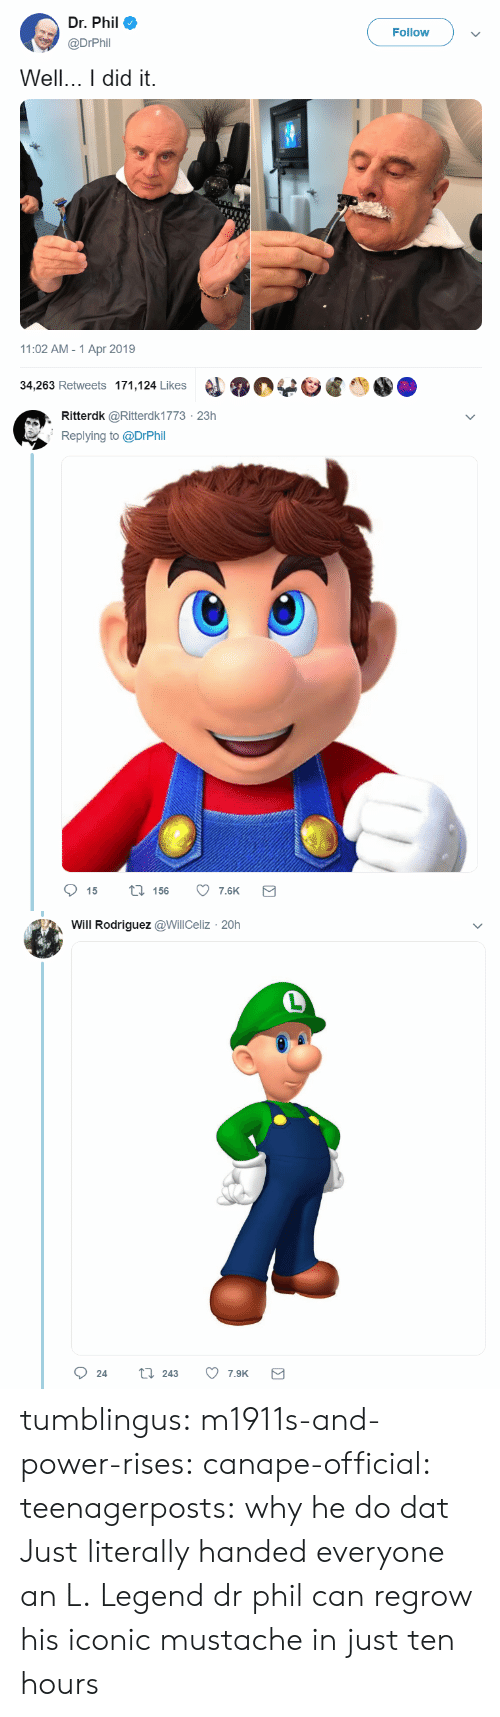 Target, Tumblr, and Blog: Dr. Phil  @DrPhil  Follow  Well. did it.  11:02 AM-1 Apr 2019  34,263 Retweets 171,124 Likes   , Ritterdk @Ritterdk1773 23h  Replying to @DrPhi  15  156  7.6K   Will Rodriguez @WillCeliz 20h  Ọ 24 t 243 7.SK tumblingus: m1911s-and-power-rises:  canape-official:  teenagerposts: why he do dat  Just literally handed everyone an L. Legend   dr phil can regrow his iconic mustache in just ten hours